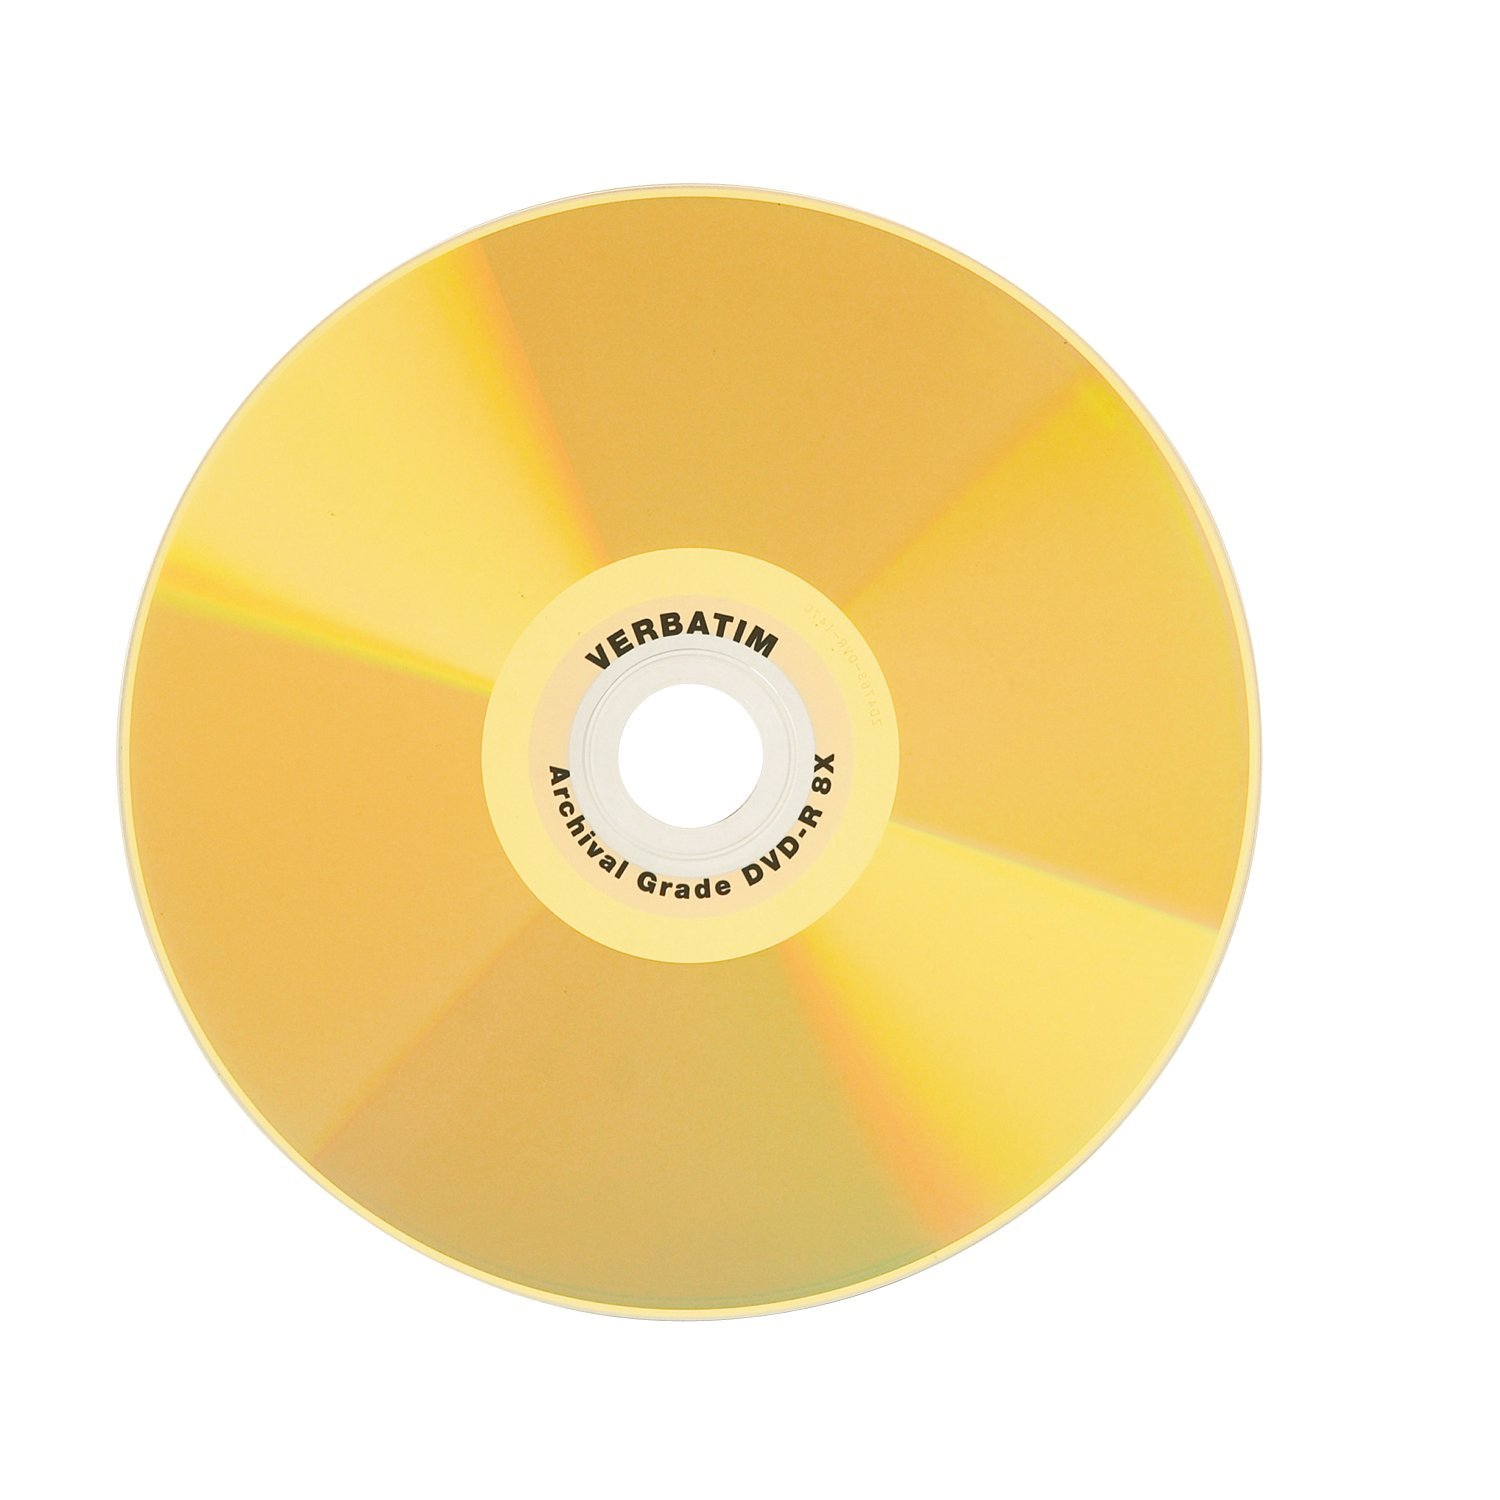 Verbatim DVD-R 4.7GB 8X UltraLife Gold Archival Grade Surface & Hard Coat - 50pk Spindle